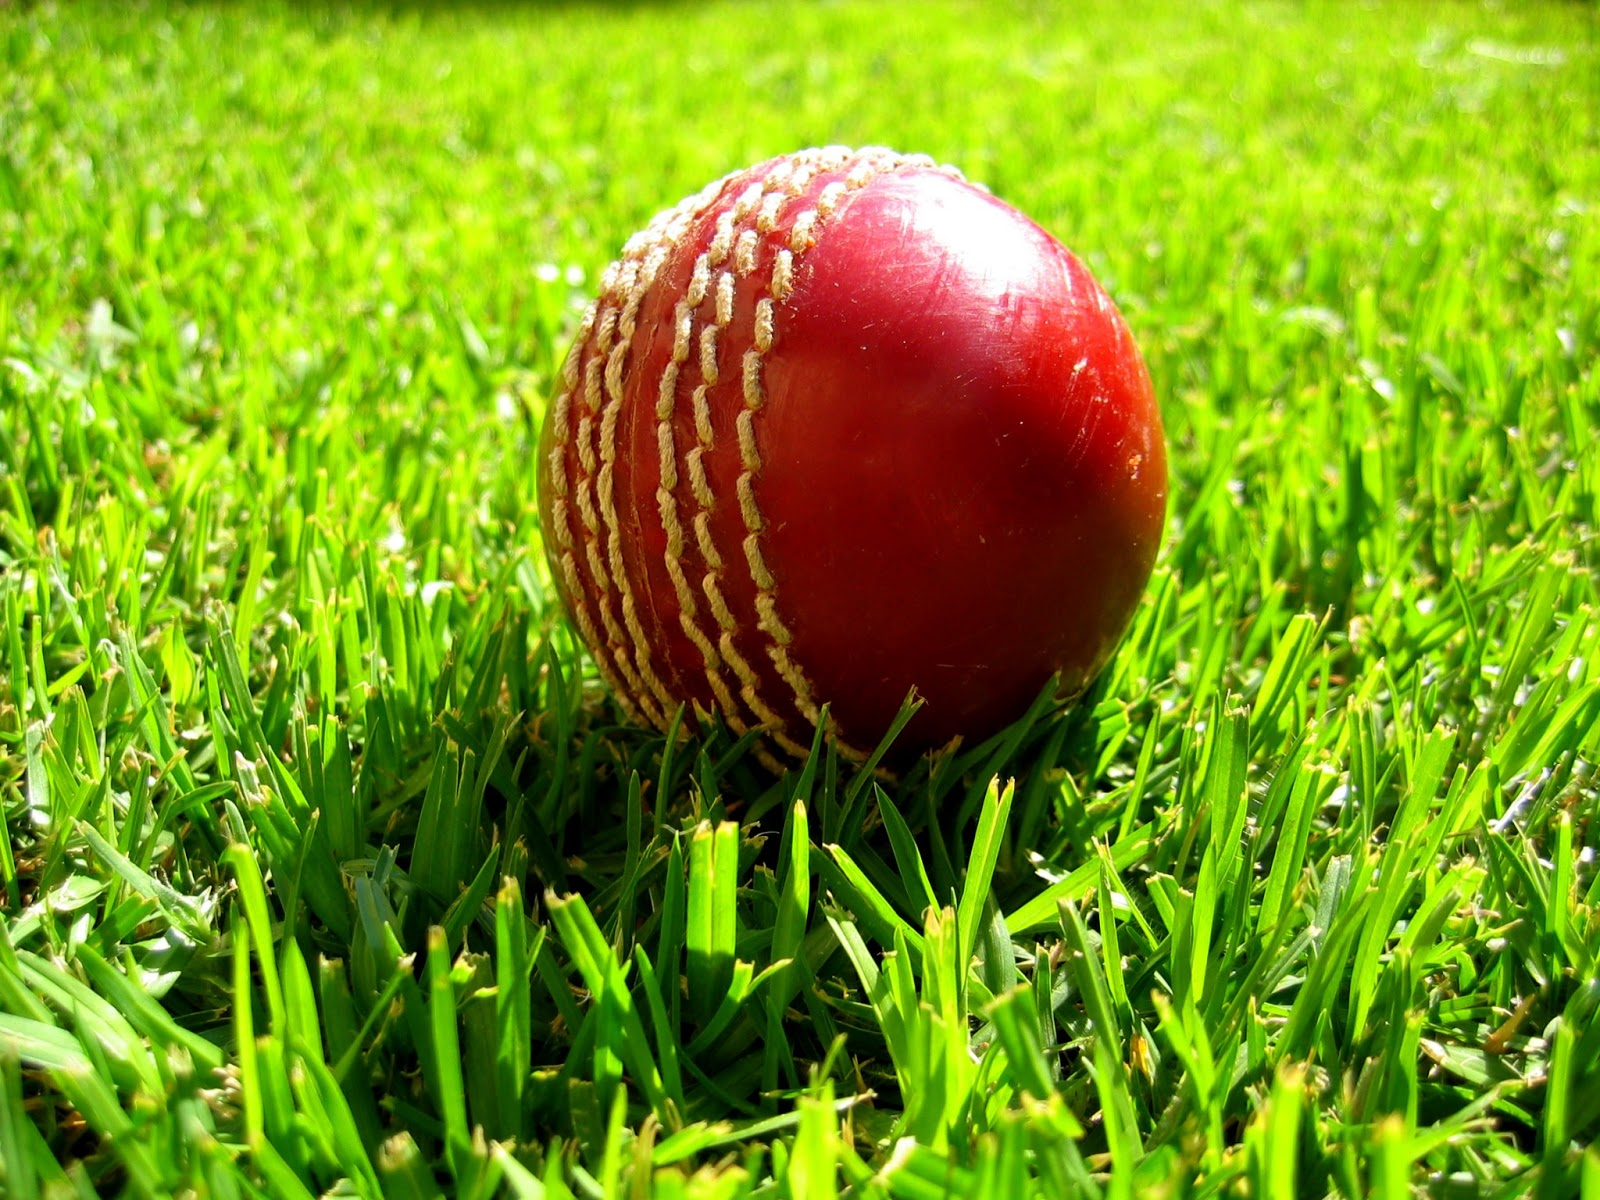 ICC Intercontinental Cup 2011-2013 Schedule, ICC Intercontinental Cup 2011-2013 Fixtures,